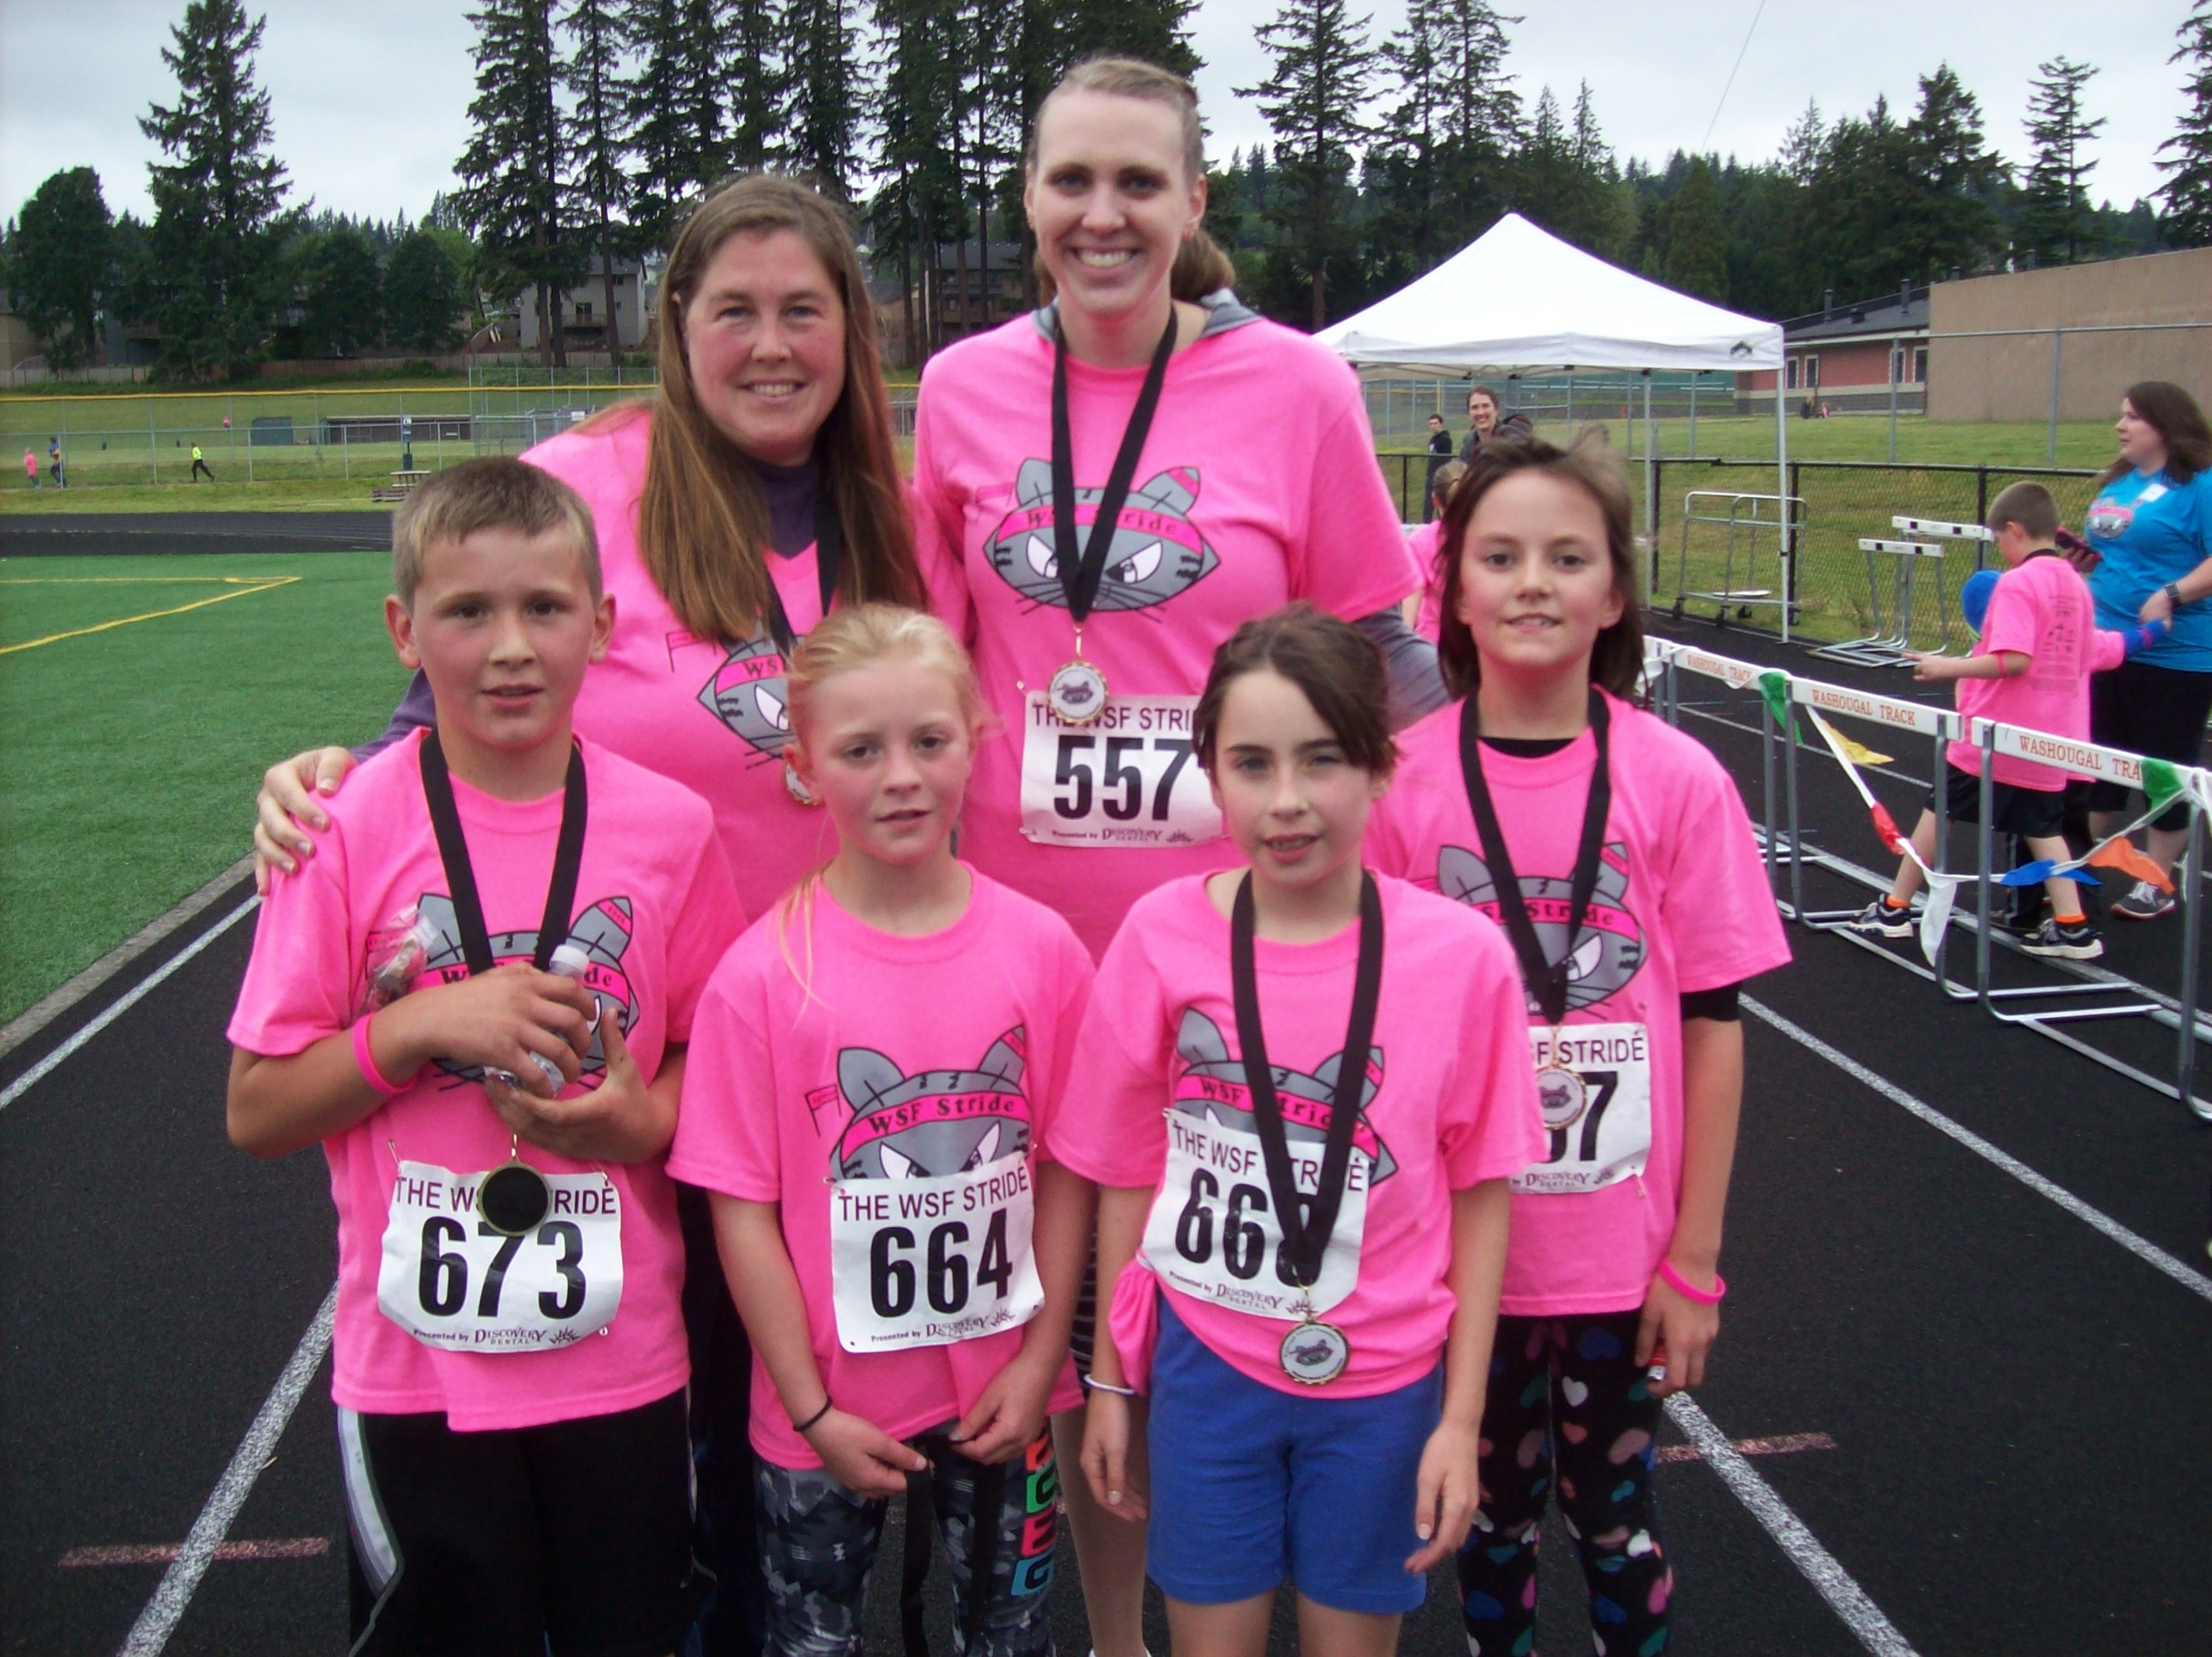 CH-S at the Annual STRIDE 5K Run/Walk - May 21, 2016